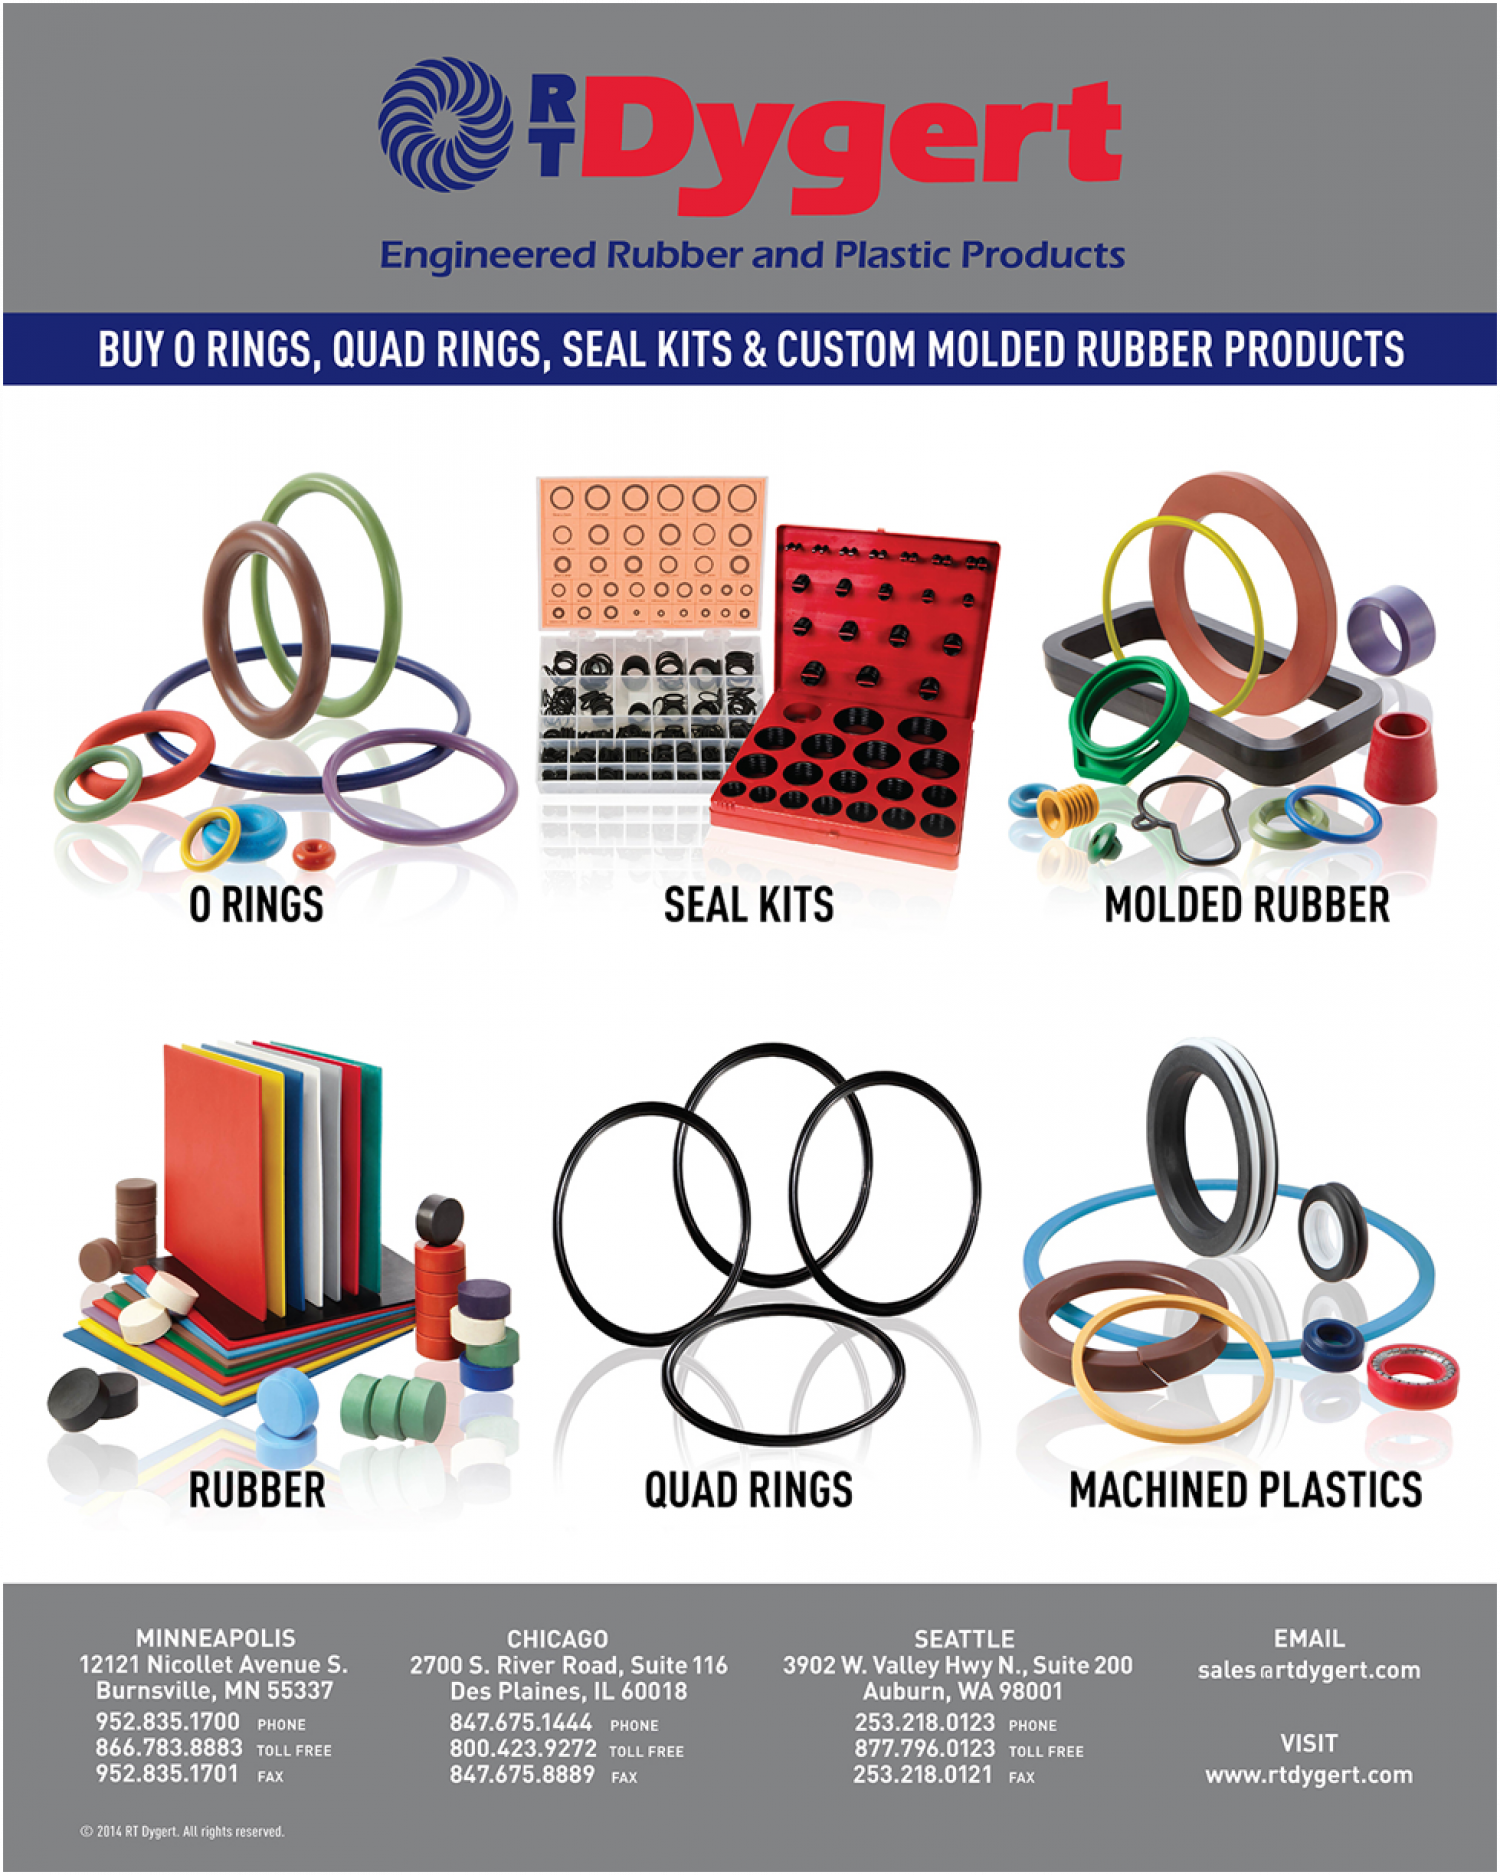 Buy O Rings, Quad Rings, Seal Kits and Custom Molded Rubber Products ...